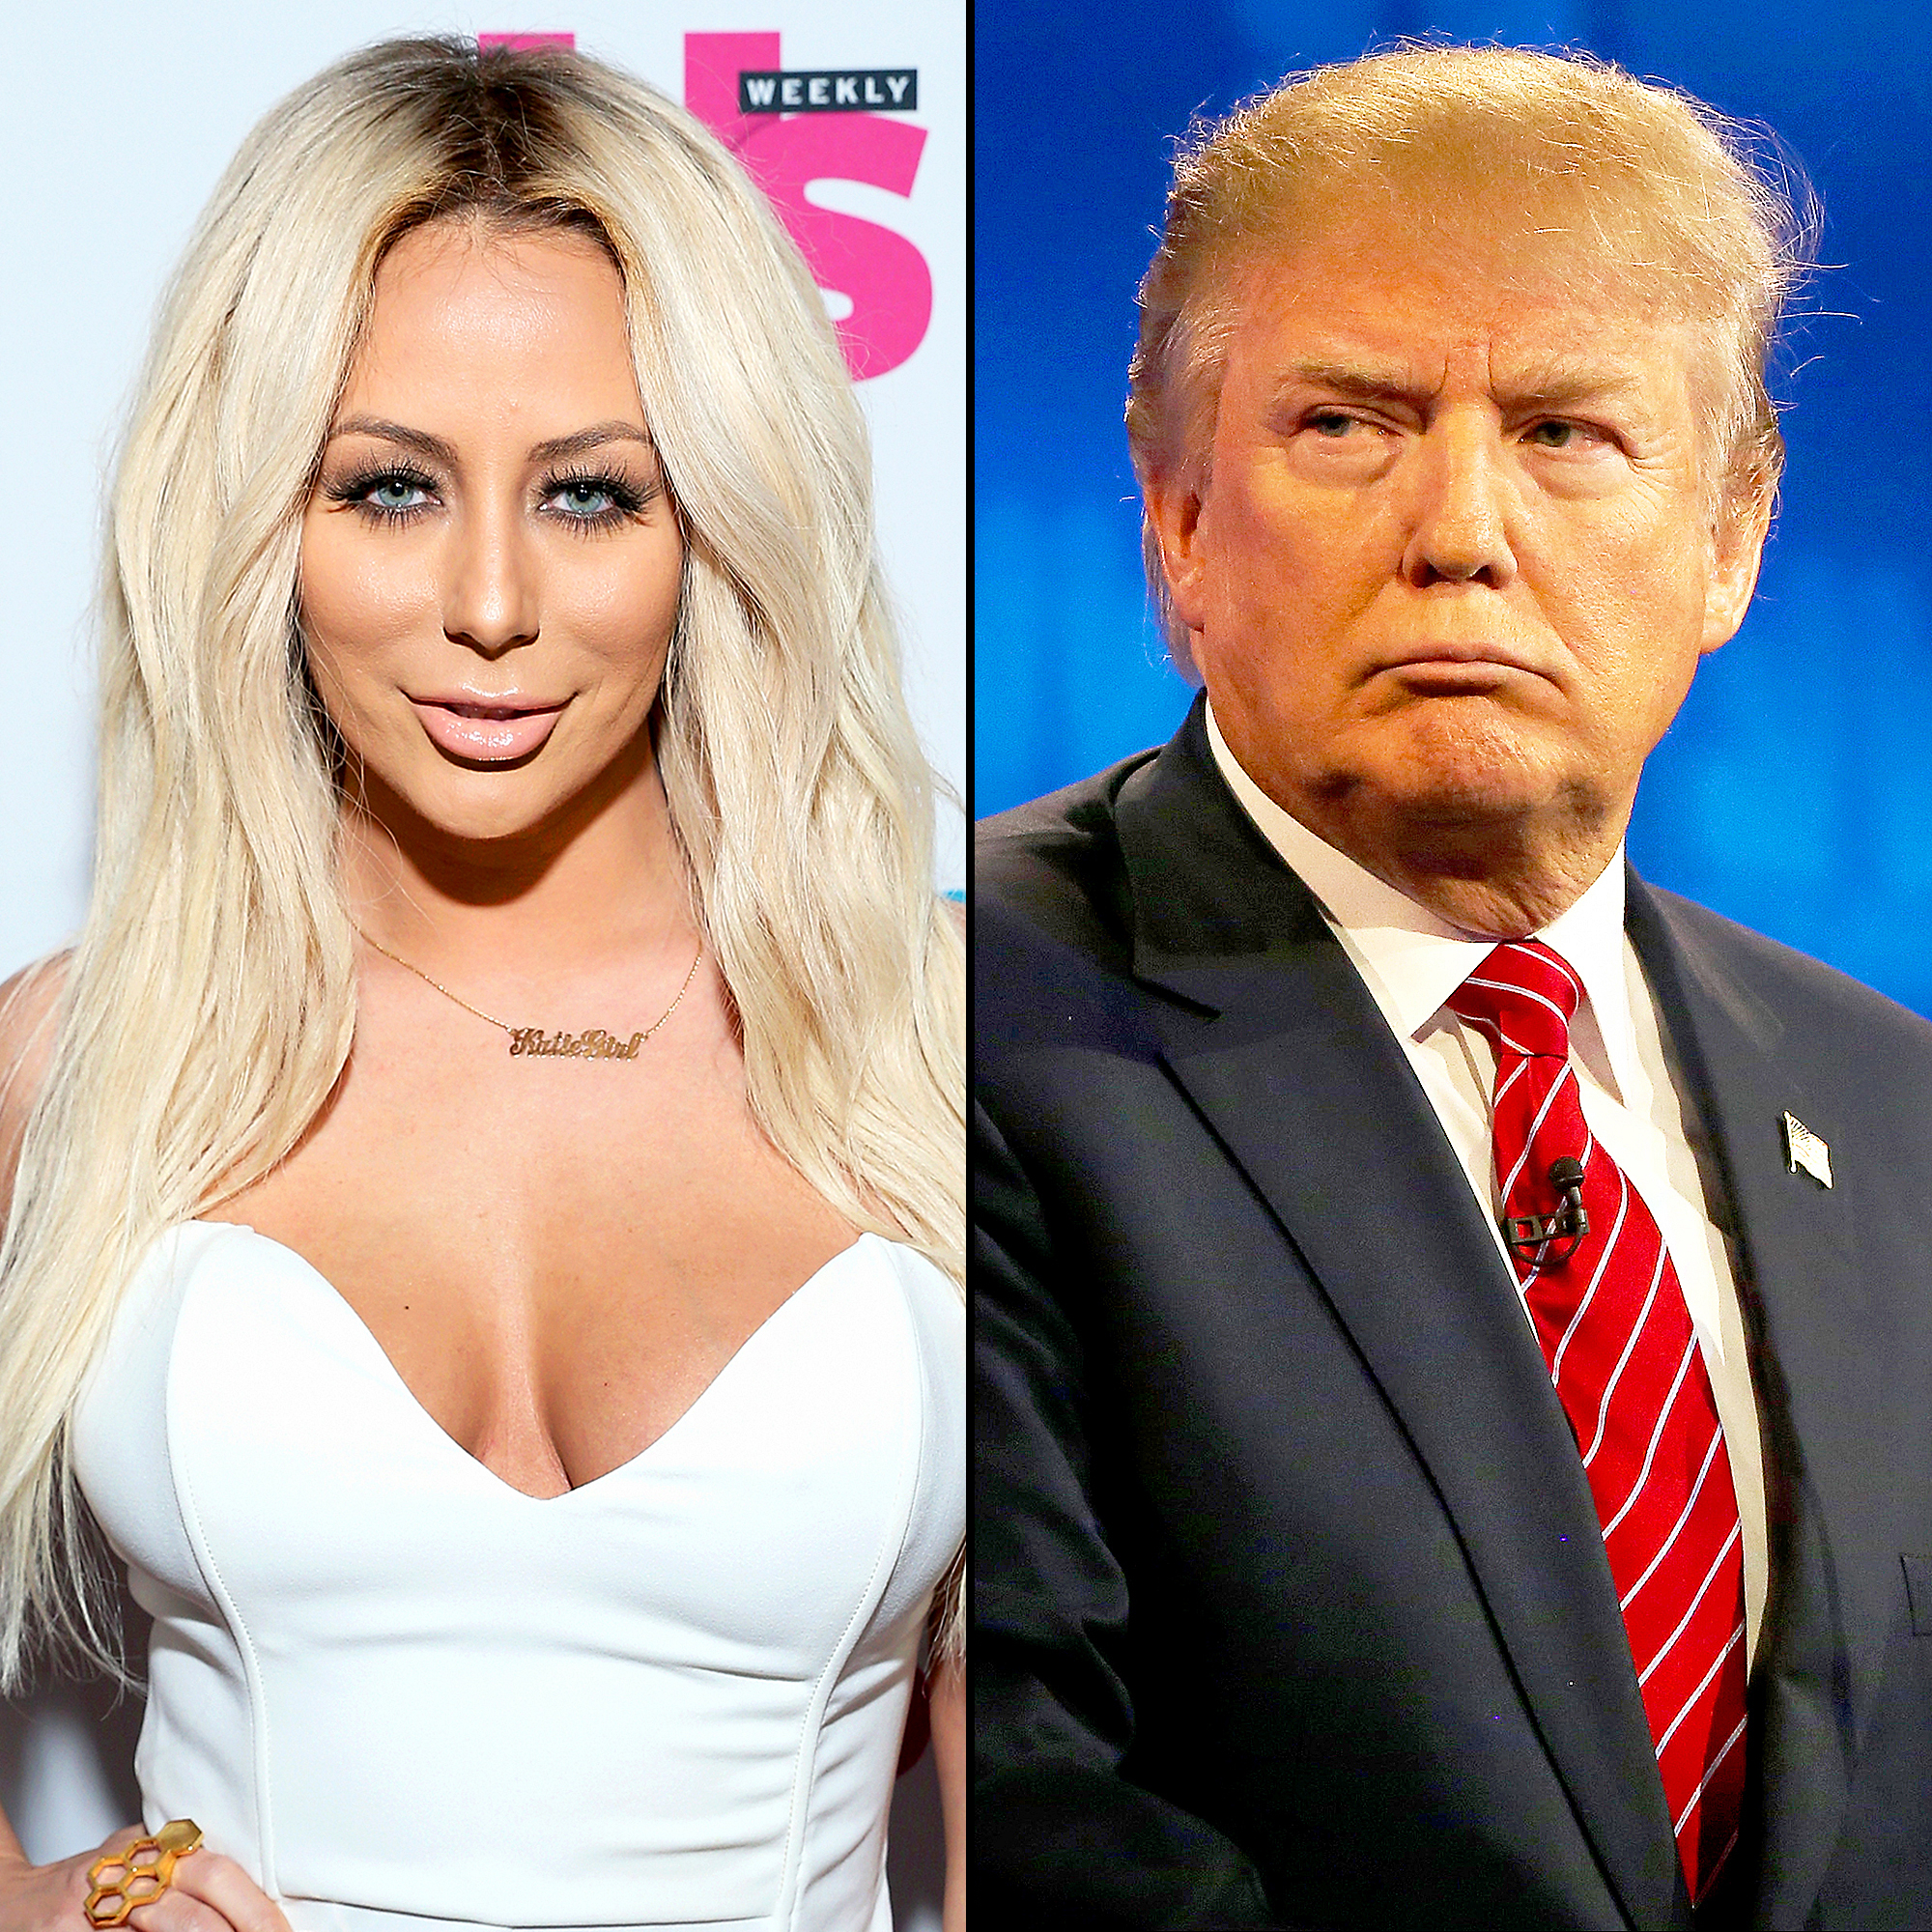 Aubrey O'Day and Donald Trump